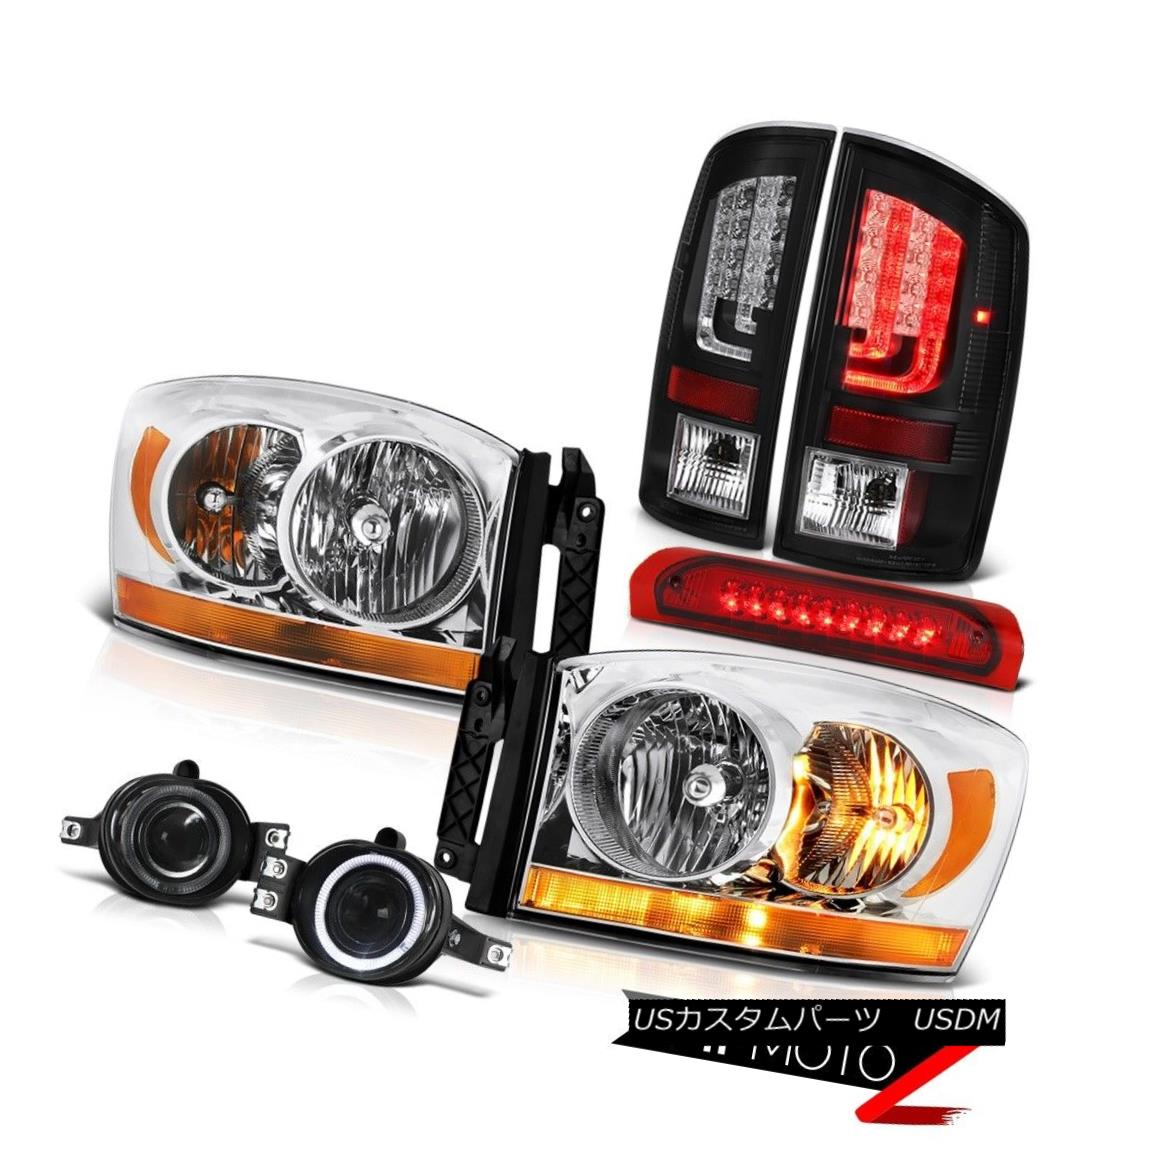 テールライト 2007-2009 Dodge Ram 3500 ST Tail Lamps Headlamps Fog Roof Cab Lamp